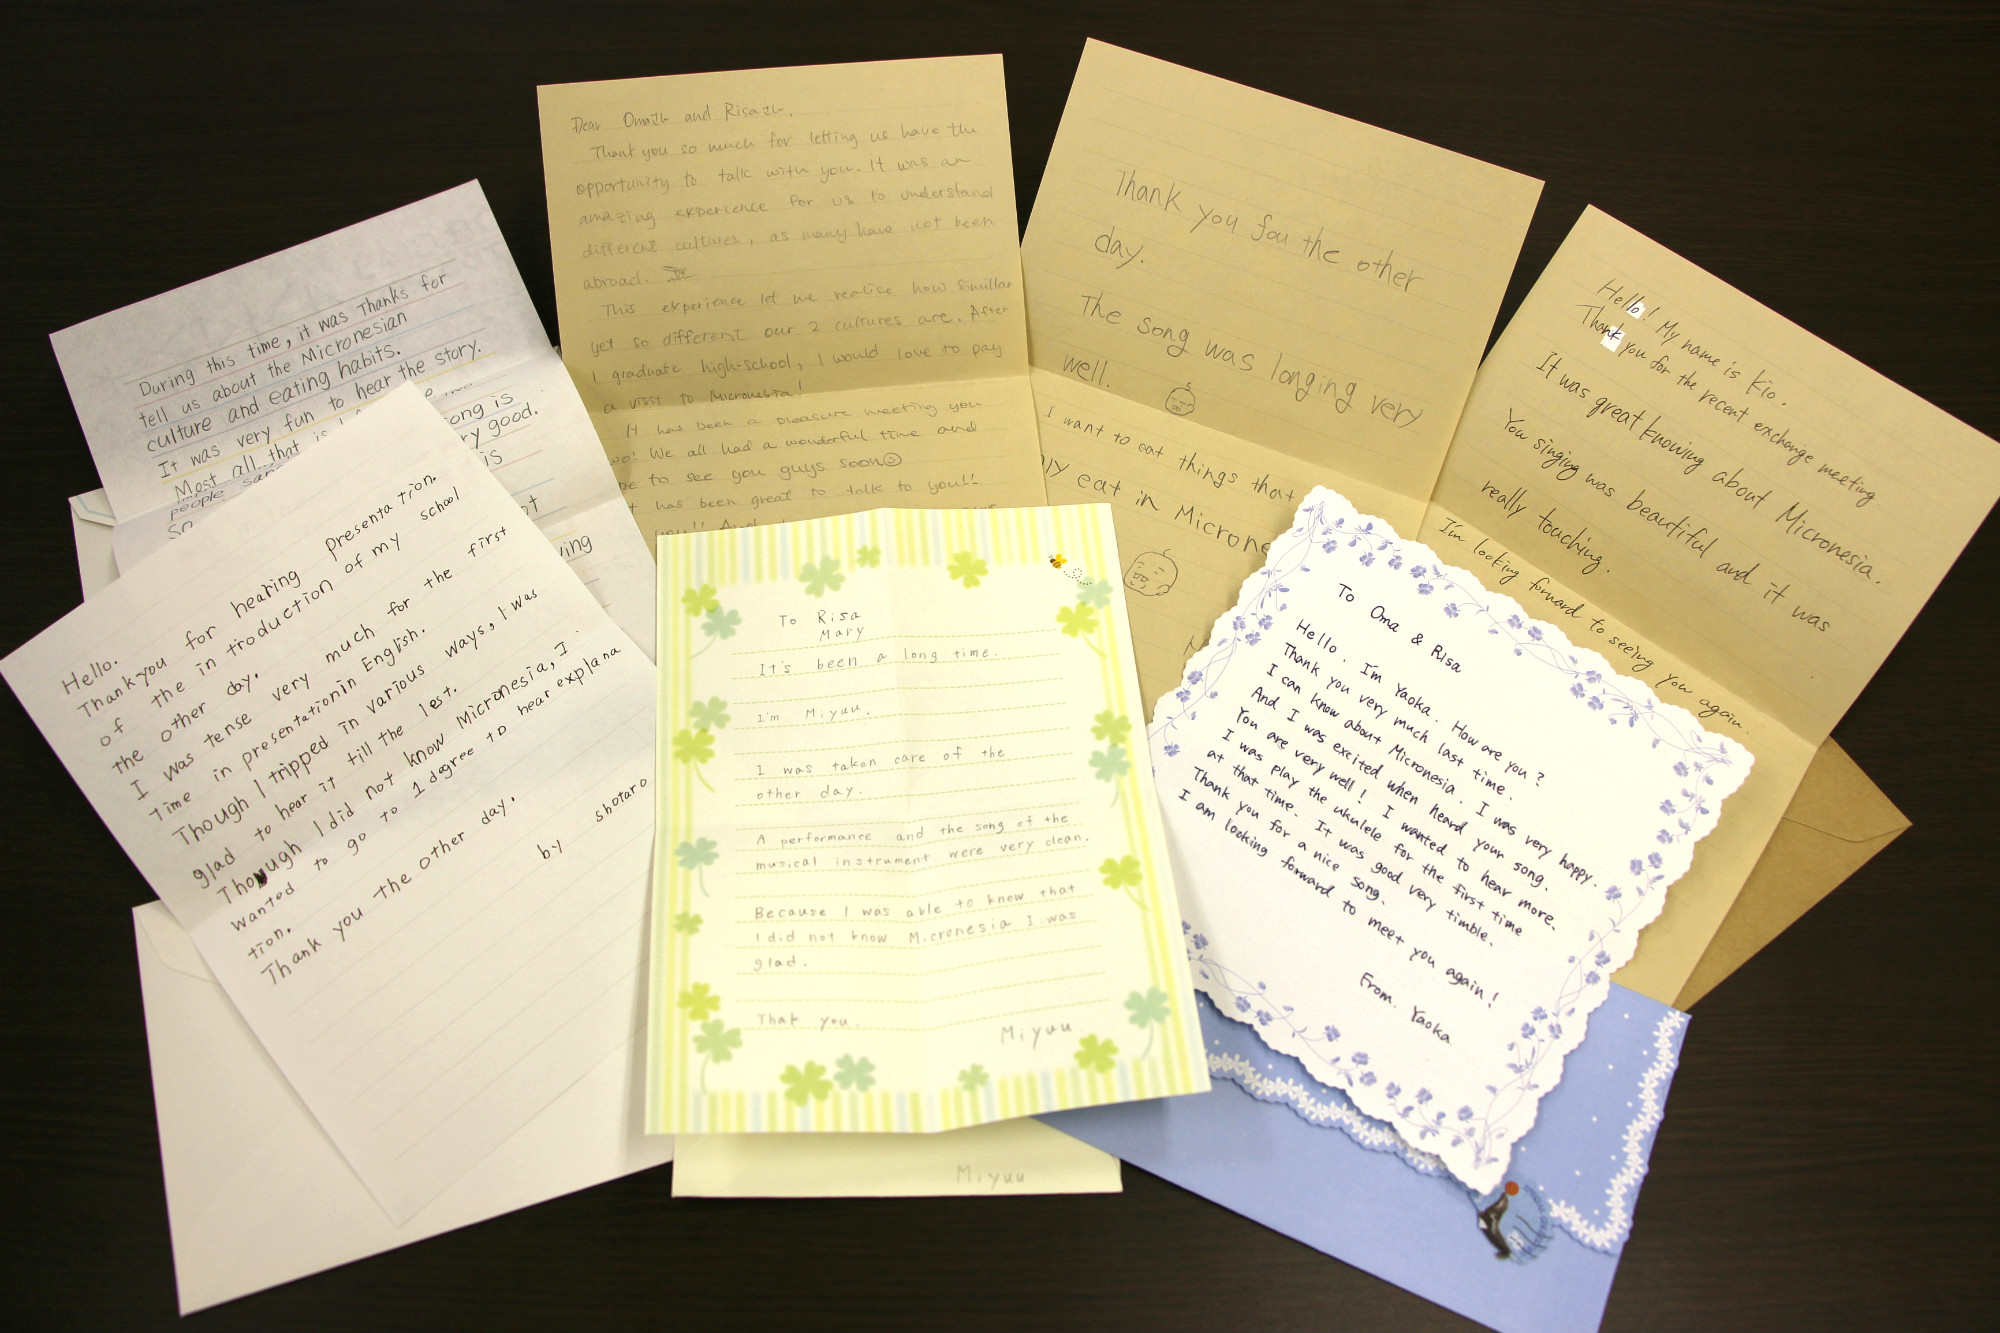 Thank-you Letters from Students at Shotoku Gakuen Junior and Senior High School